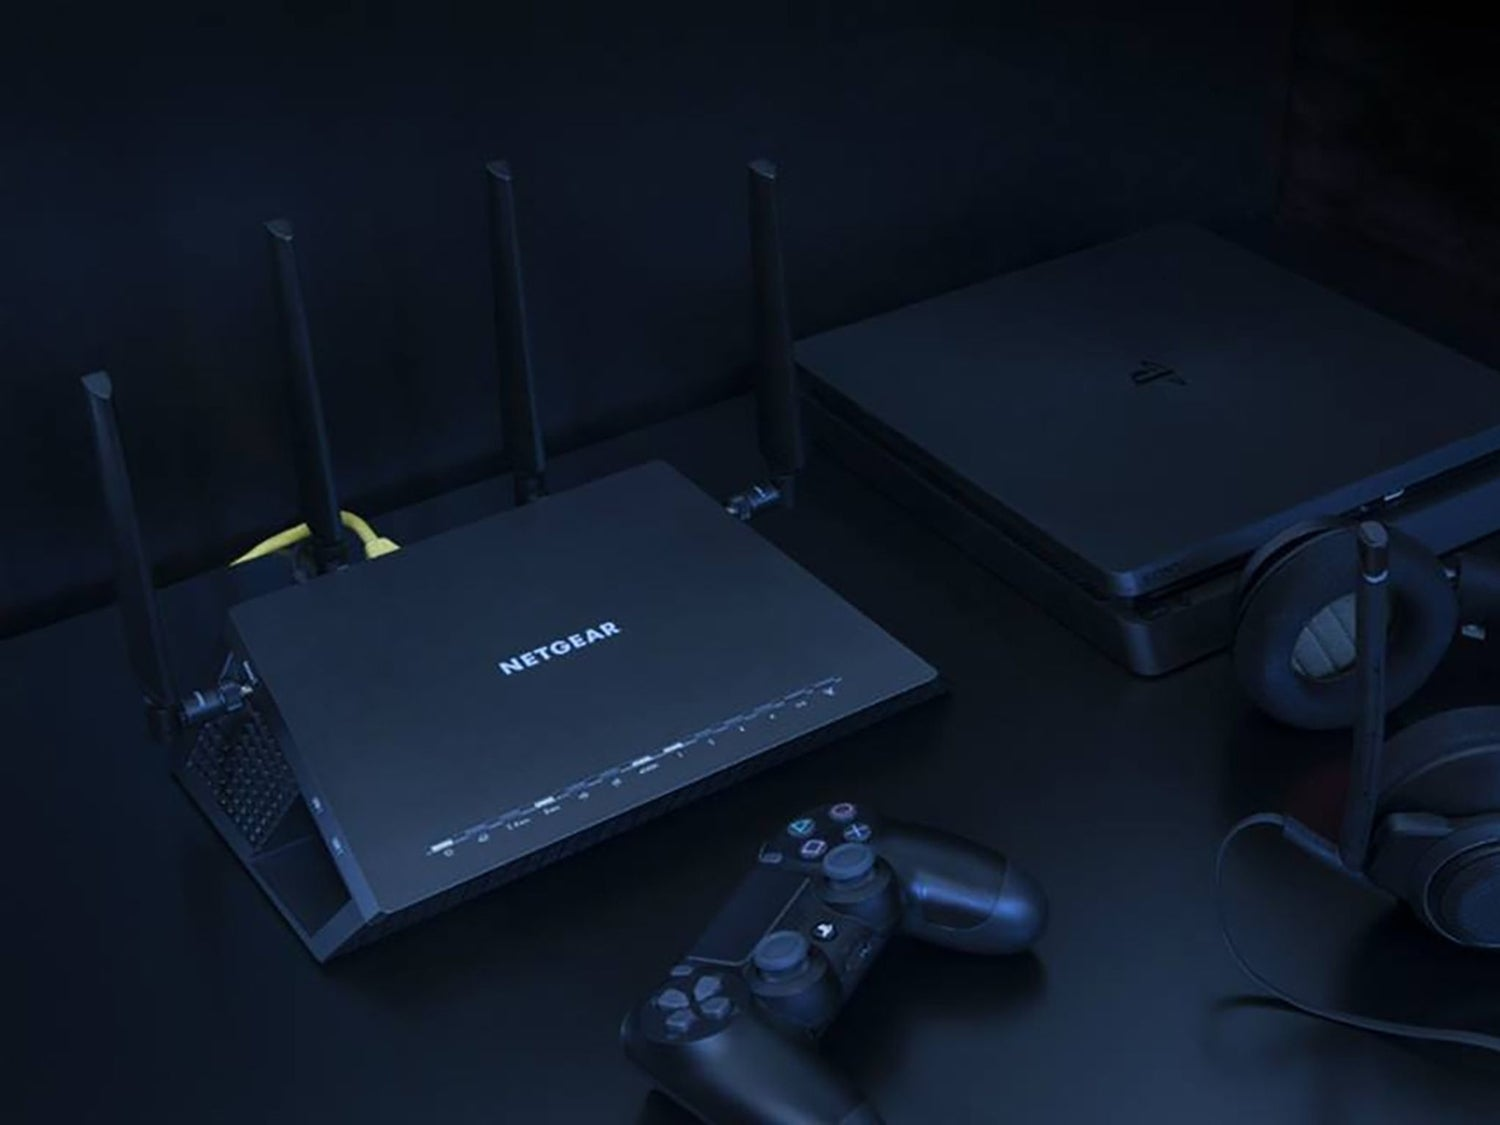 A Netgear router near a PlayStation video game console and headphones.